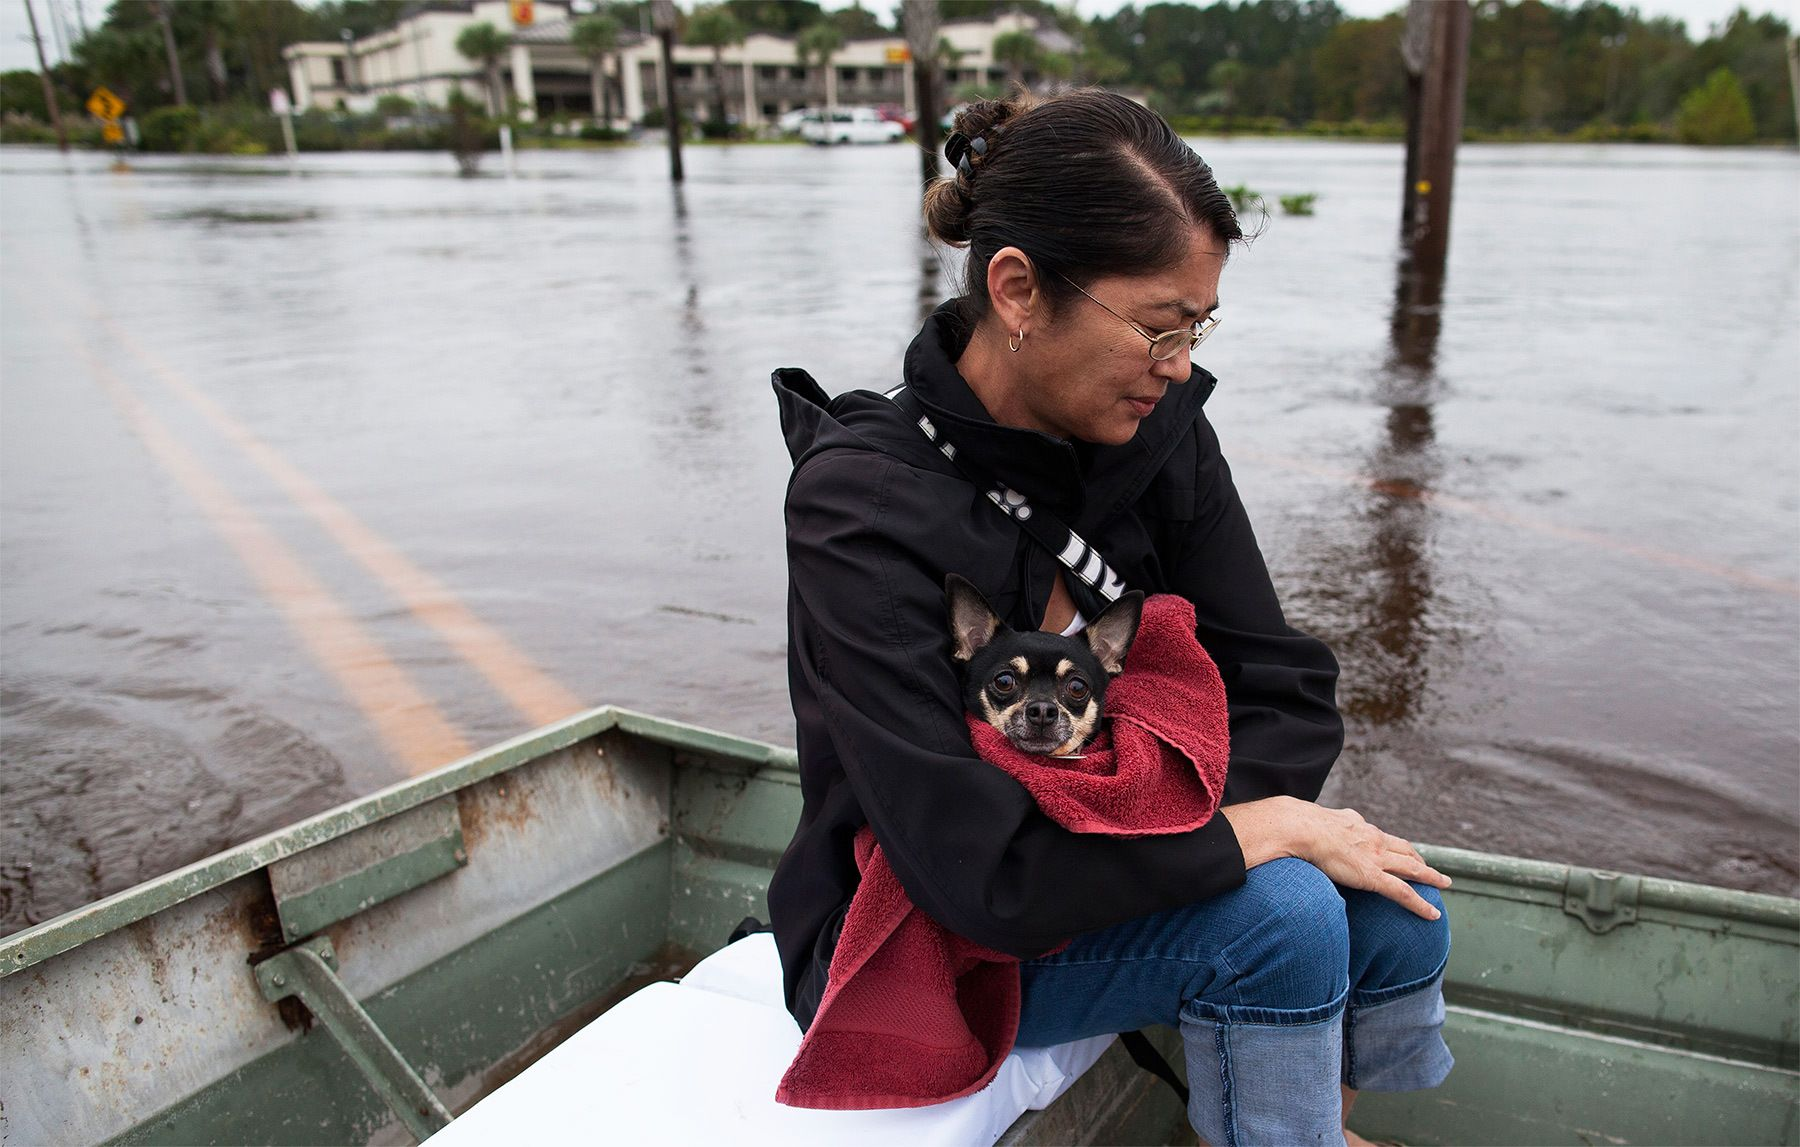 Miki Woodward holds family dog Butch while sitting on a johnboat along Waccamaw Drive in Conway, South Carolina October 6, 2015. The Woodward family came to the landing from their flooded neighborhood to meet daughter Kelly who had been separated from them for a few days because of the floods. Floodwaters from unprecedented rainfall in South Carolina have killed 11 people, closed some 550 roads and bridges and prompted hundreds of rescues of people trapped in homes and cars, officials said on Monday. REUTERS/Randall Hill